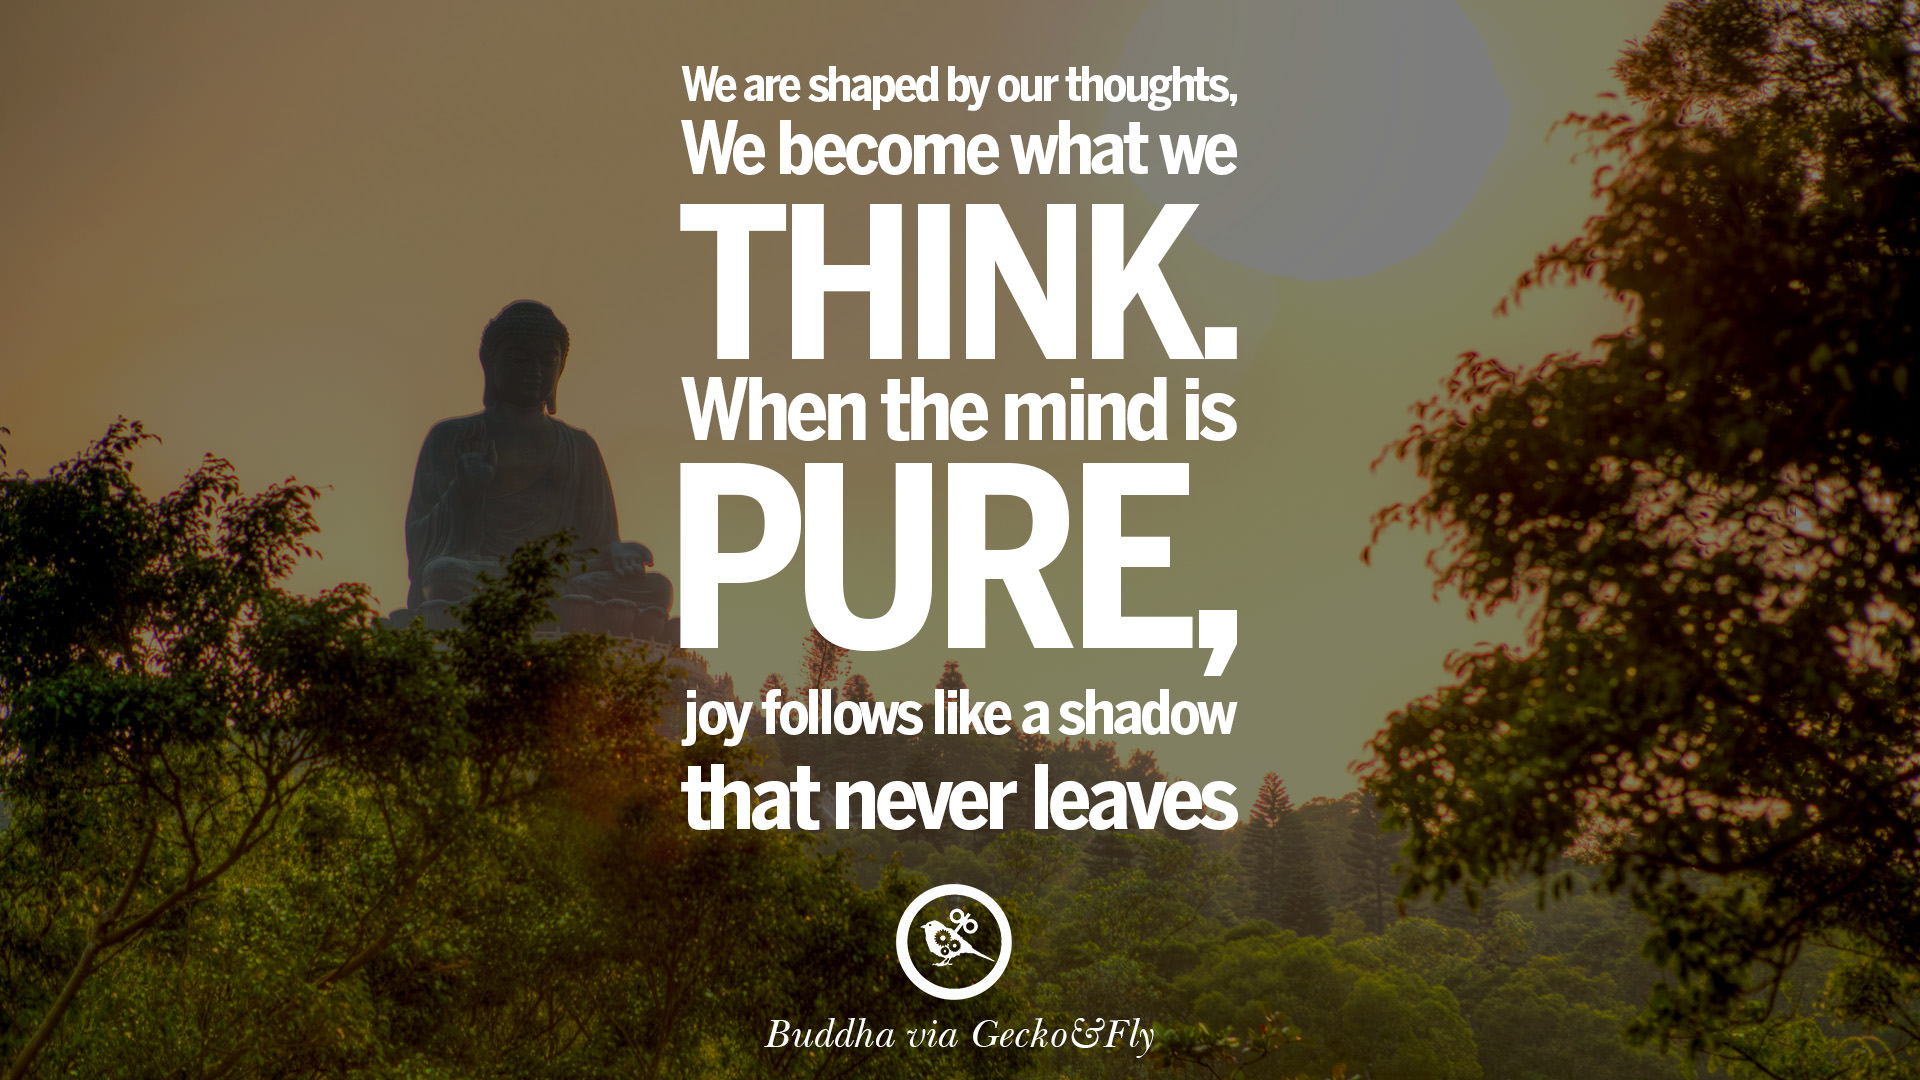 We are shaped by our thoughts we become what we think when the mind is pure joy follows like a shadow that never leaves